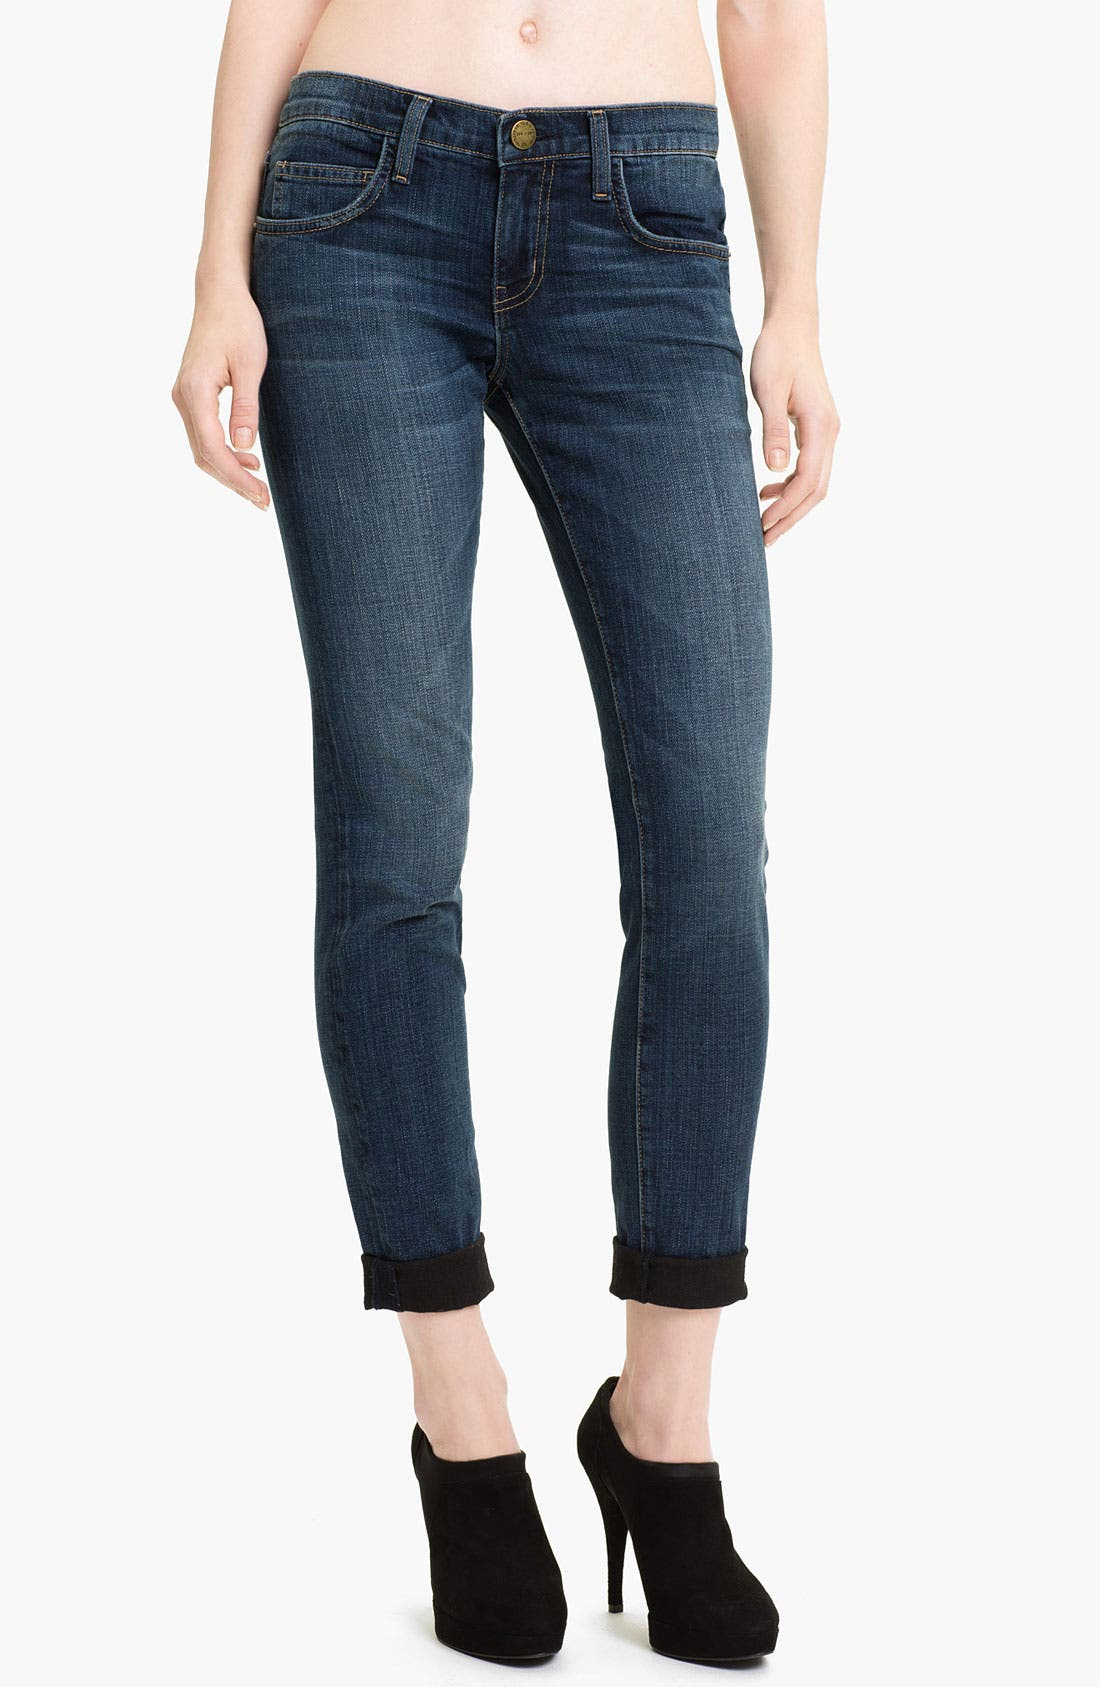 Main Image - Current/Elliott 'The Rolled' Stretch Jeans (Black Loved)